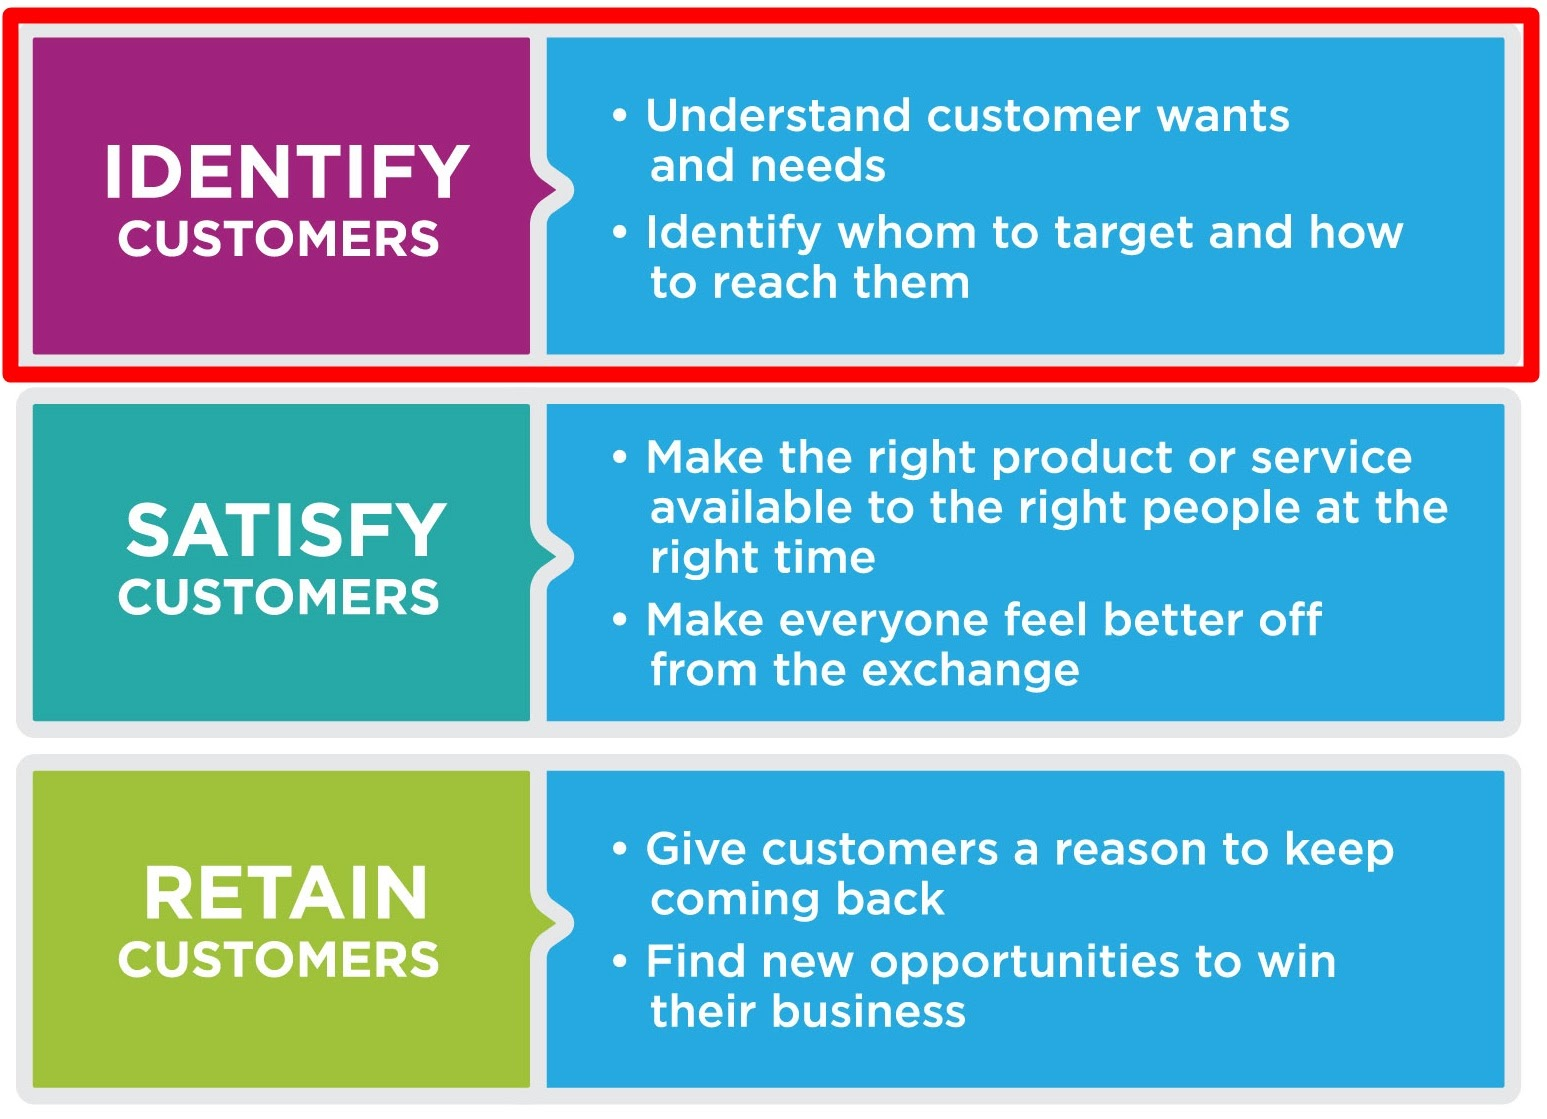 Three Role of Customers in Marketing - Identity, Satisfy, Retain